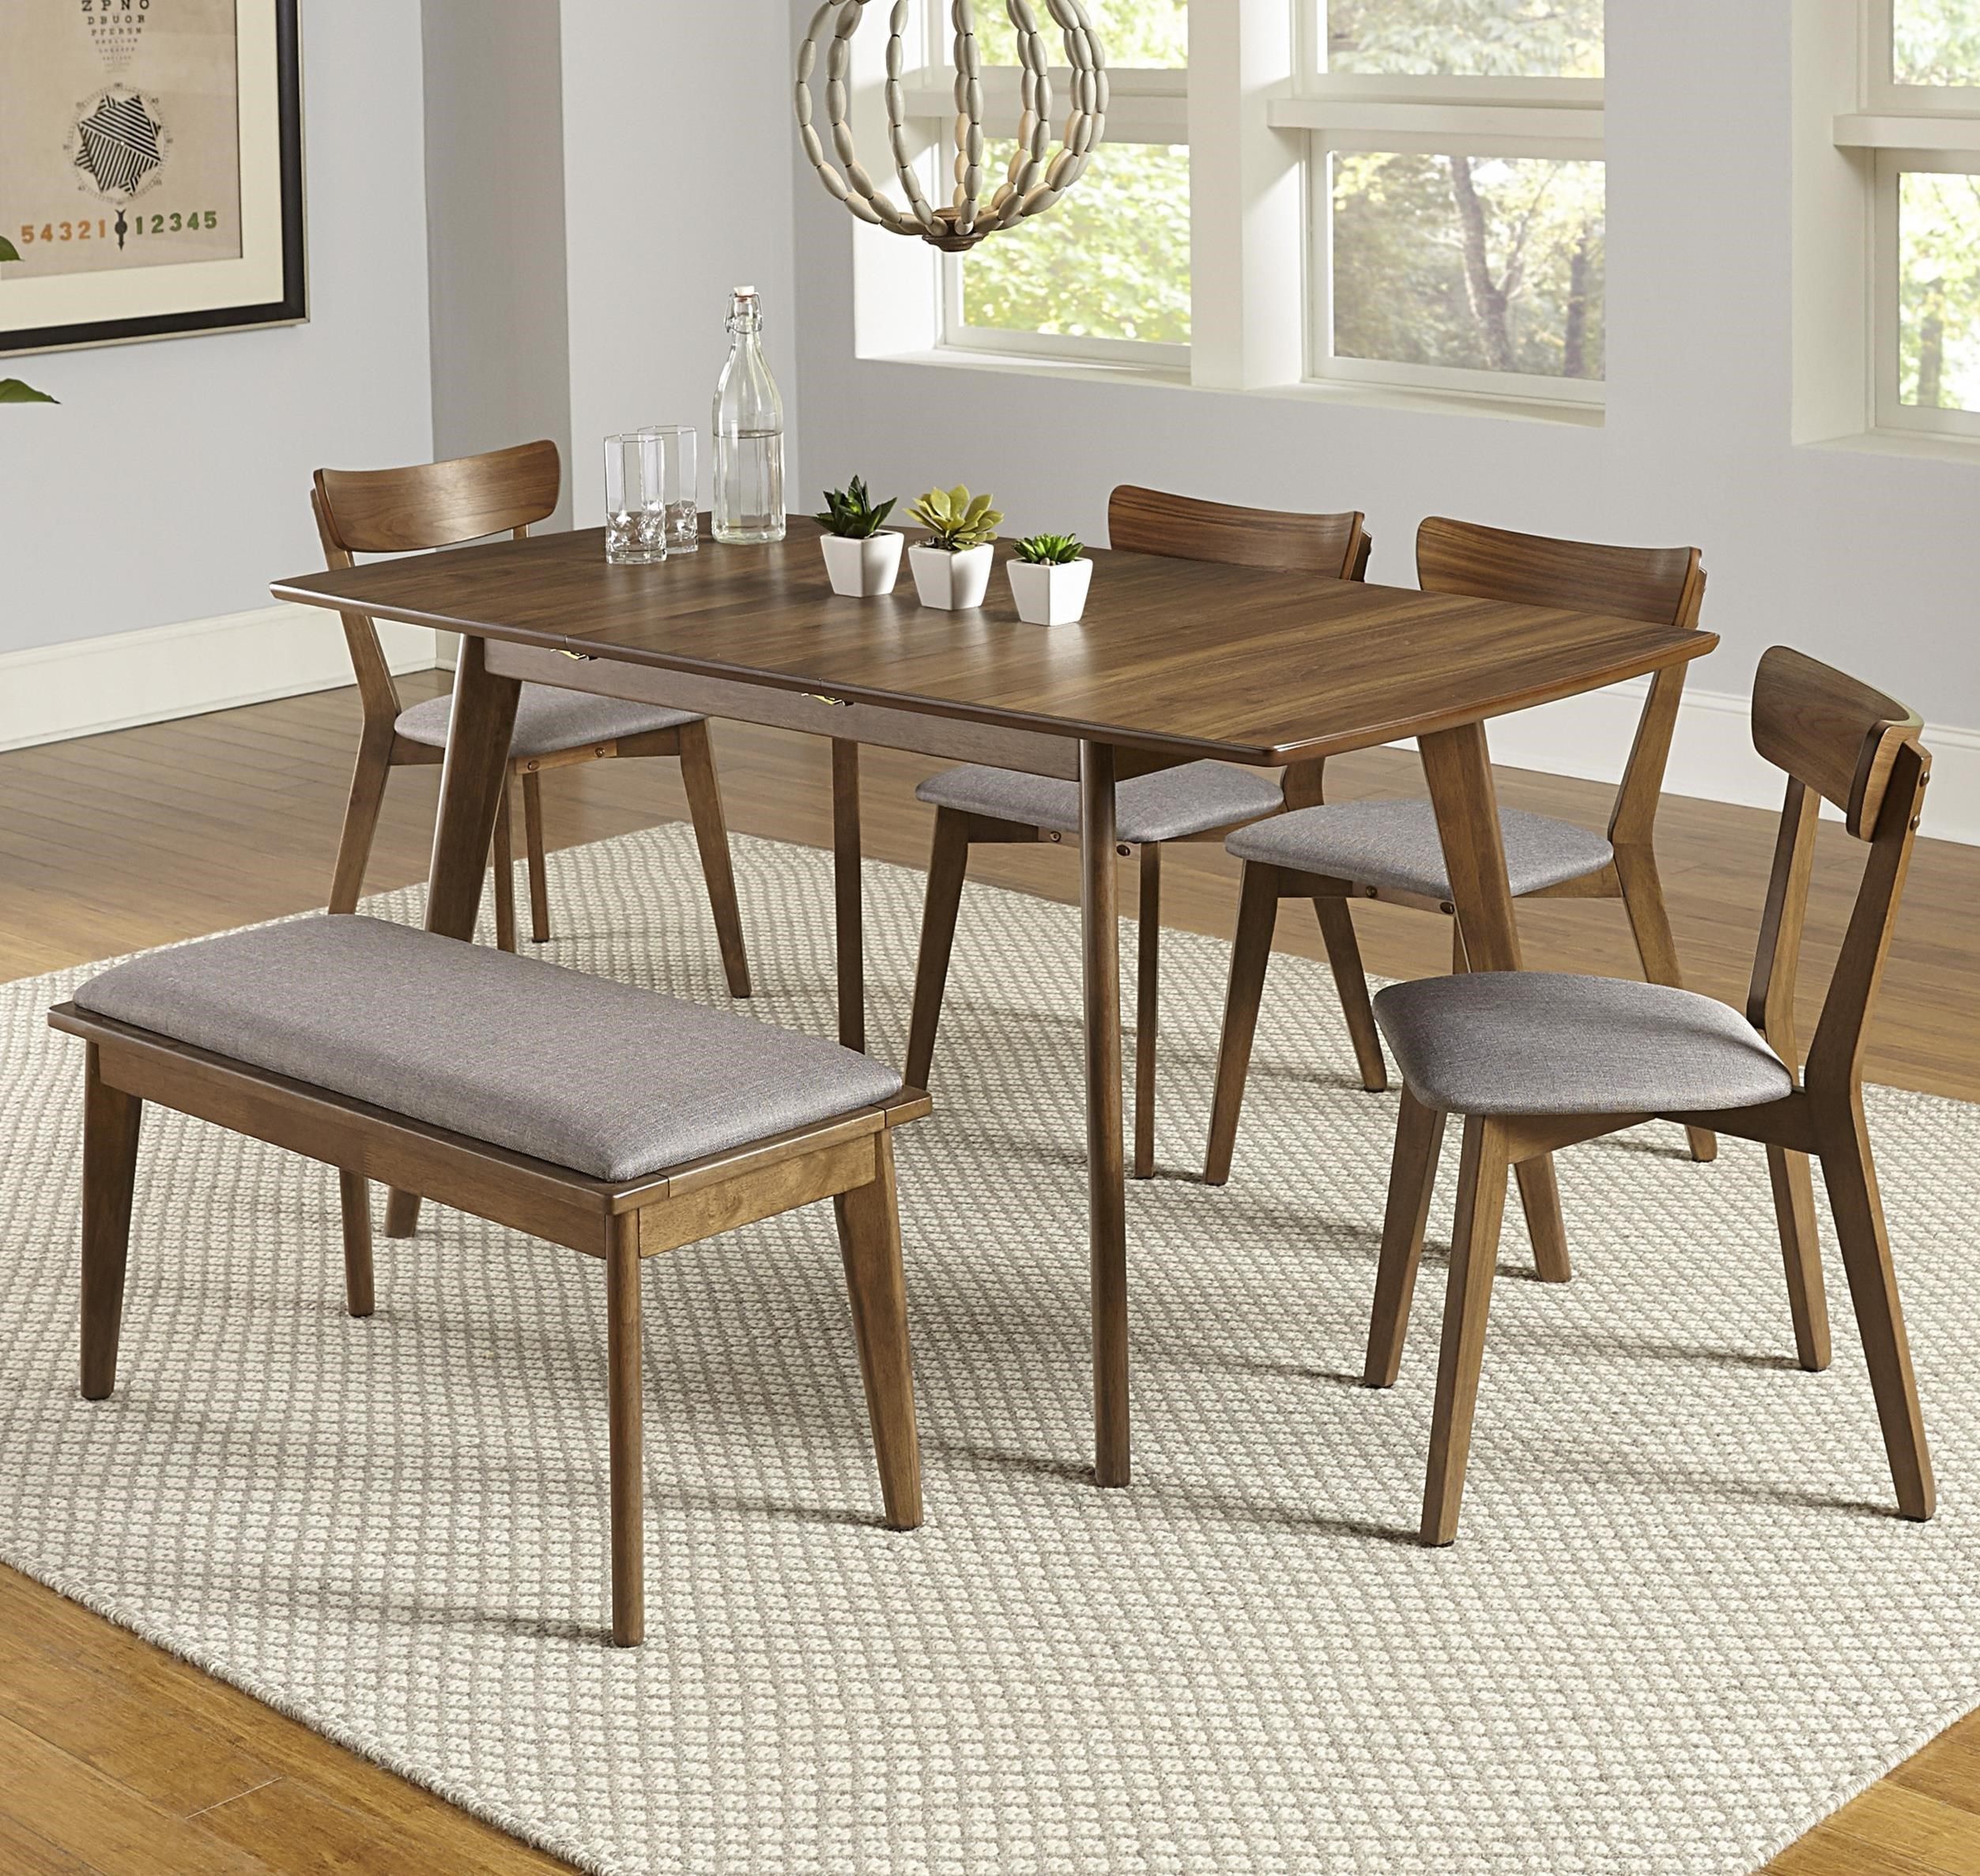 Arcade 6-Piece Butterfly Table Set with Bench by Progressive Furniture at Simply Home by Lindy's